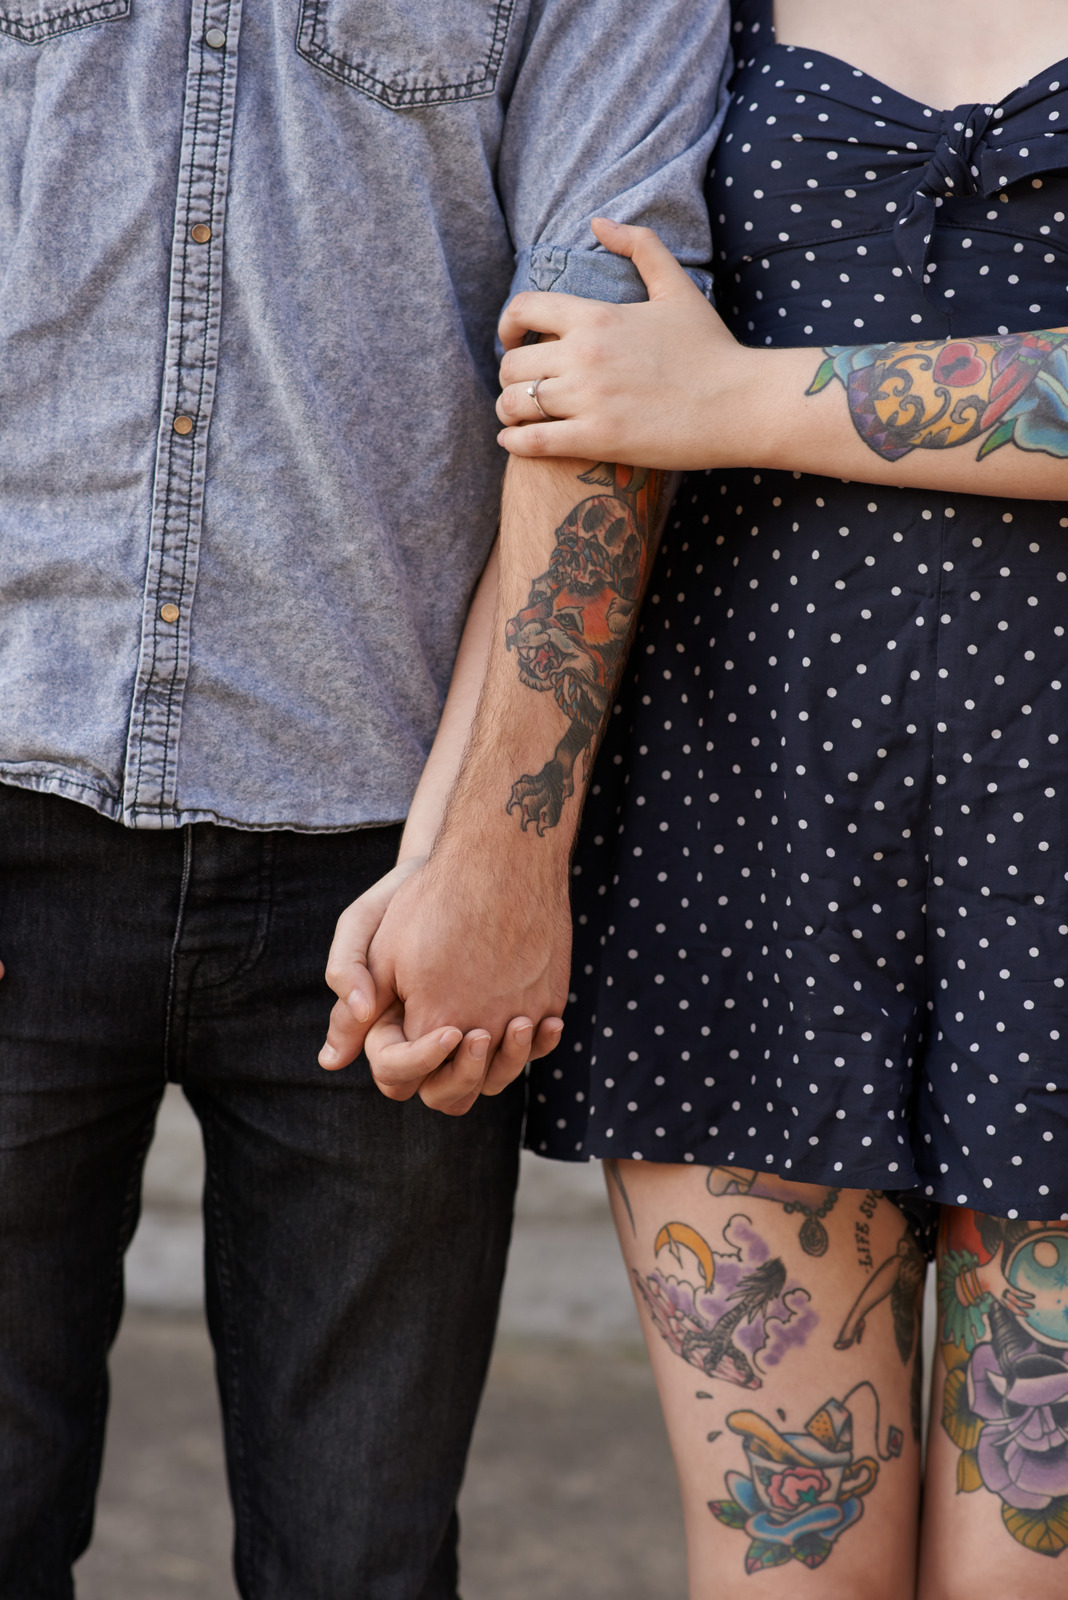 Cropped shot of a couple with tattoos on their bodieshttp://195.154.178.81/DATA/i_collage/pu/shoots/805531.jpg